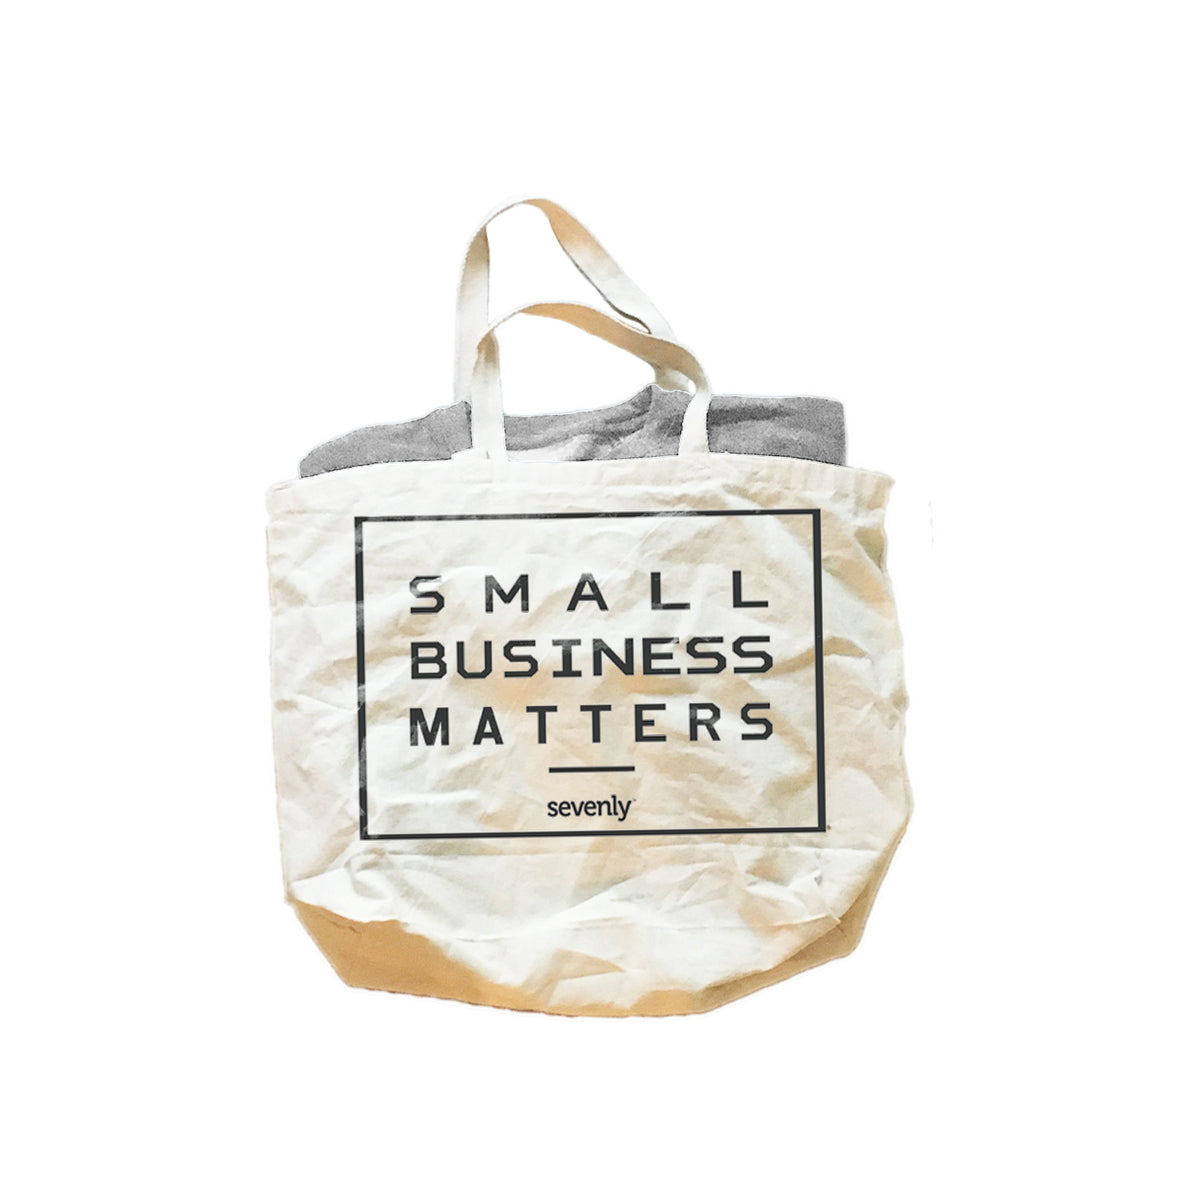 Small Business Matters Gift Set - Unisex Crewneck Sweatshirt & Jumbo Cotton Canvas Tote